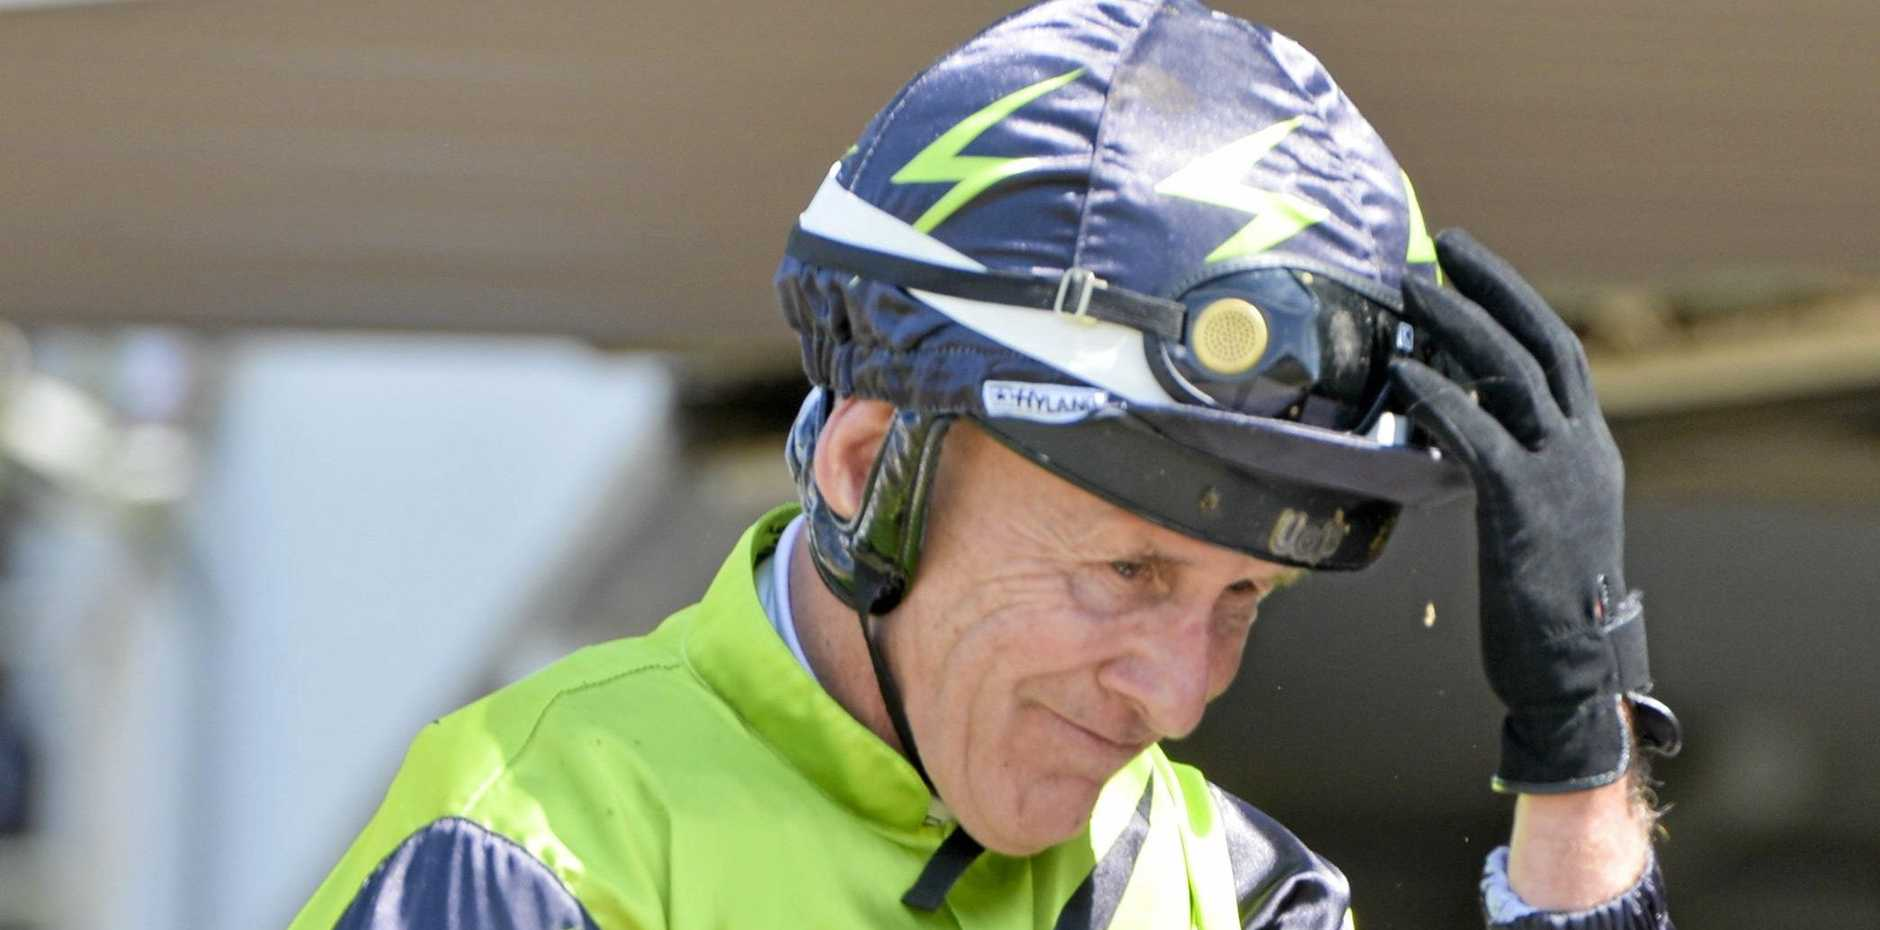 GOING STRONG: Jockey Jeff Lloyd may have to delay his retirement plans after another Ipswich win on Tang Dynasty before being awarded the state's top riding honour.